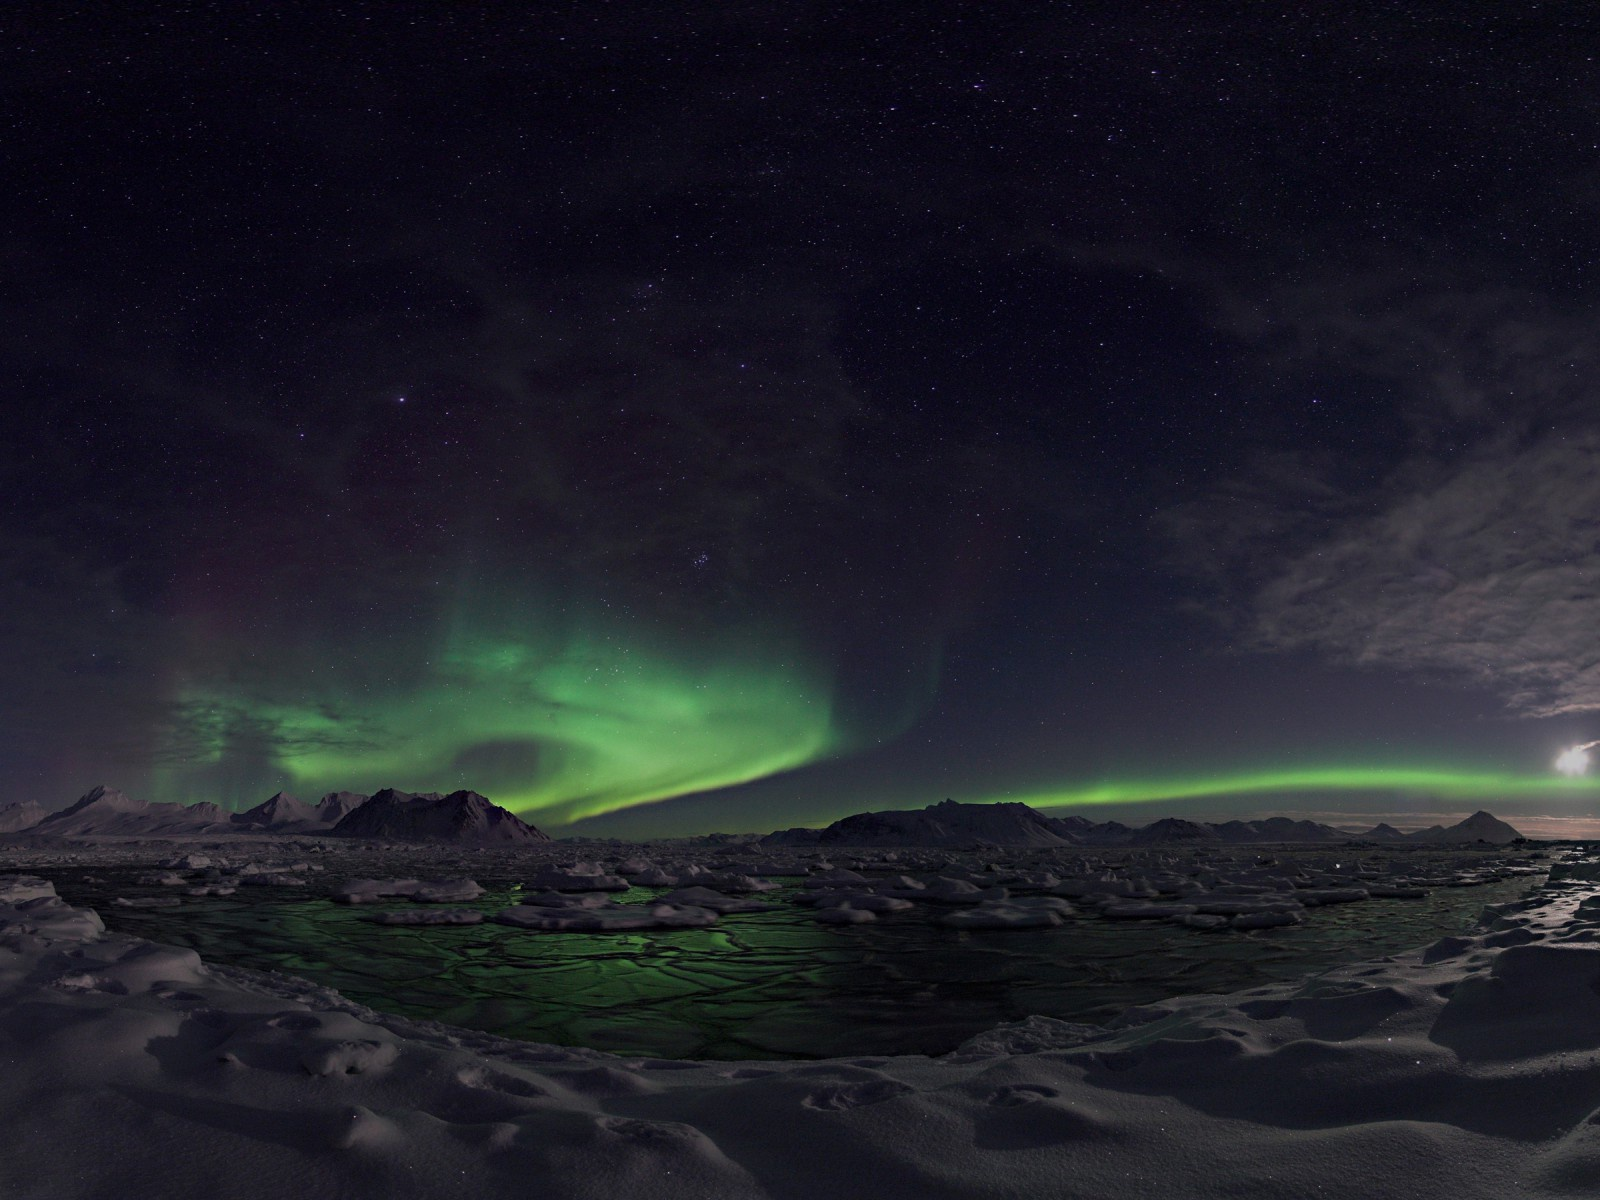 1500x500 Awesome Northern Lights Twitter Header Photo